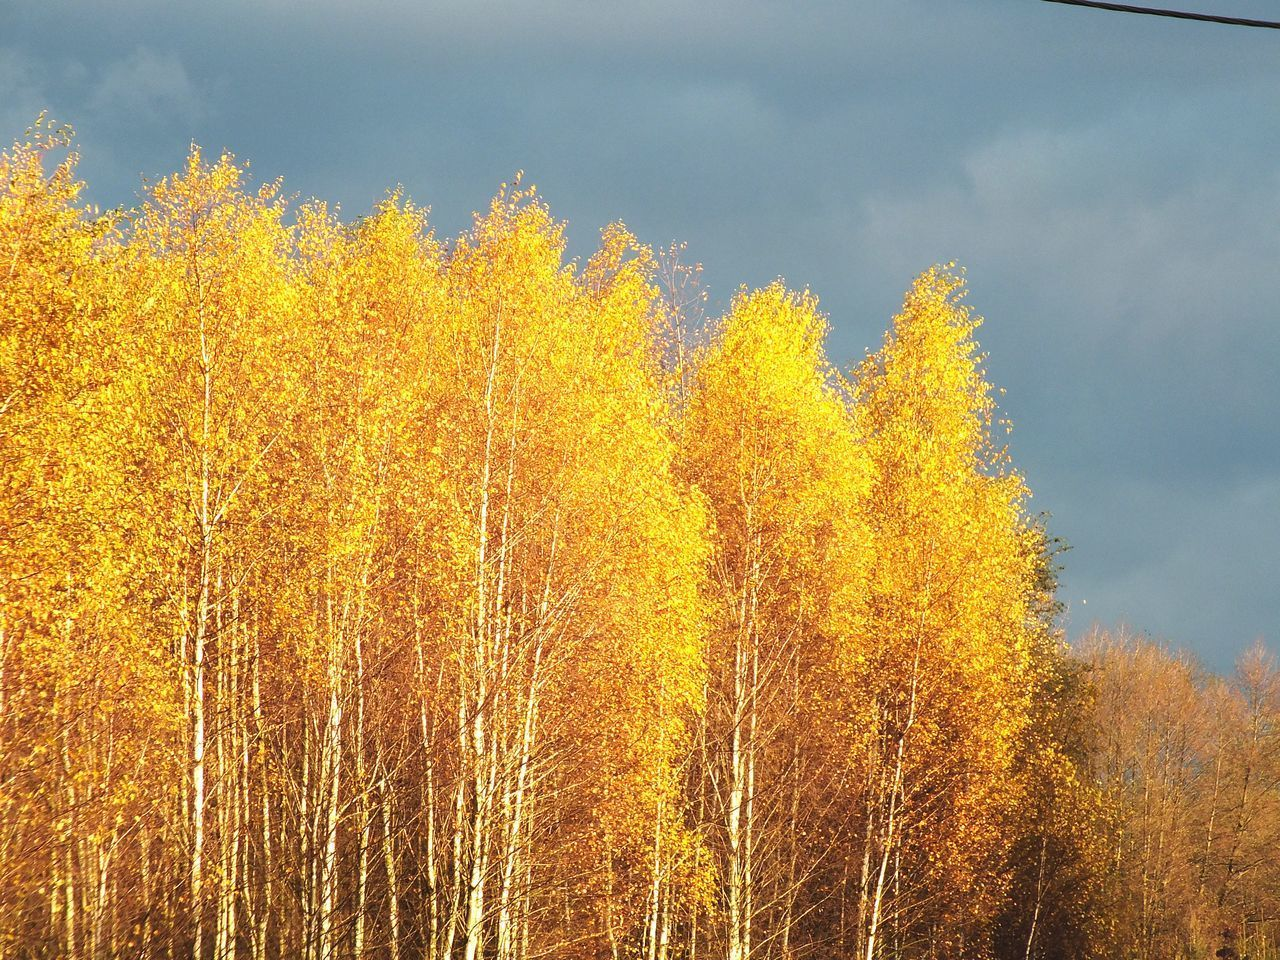 LOW ANGLE VIEW OF YELLOW TREES AGAINST SKY